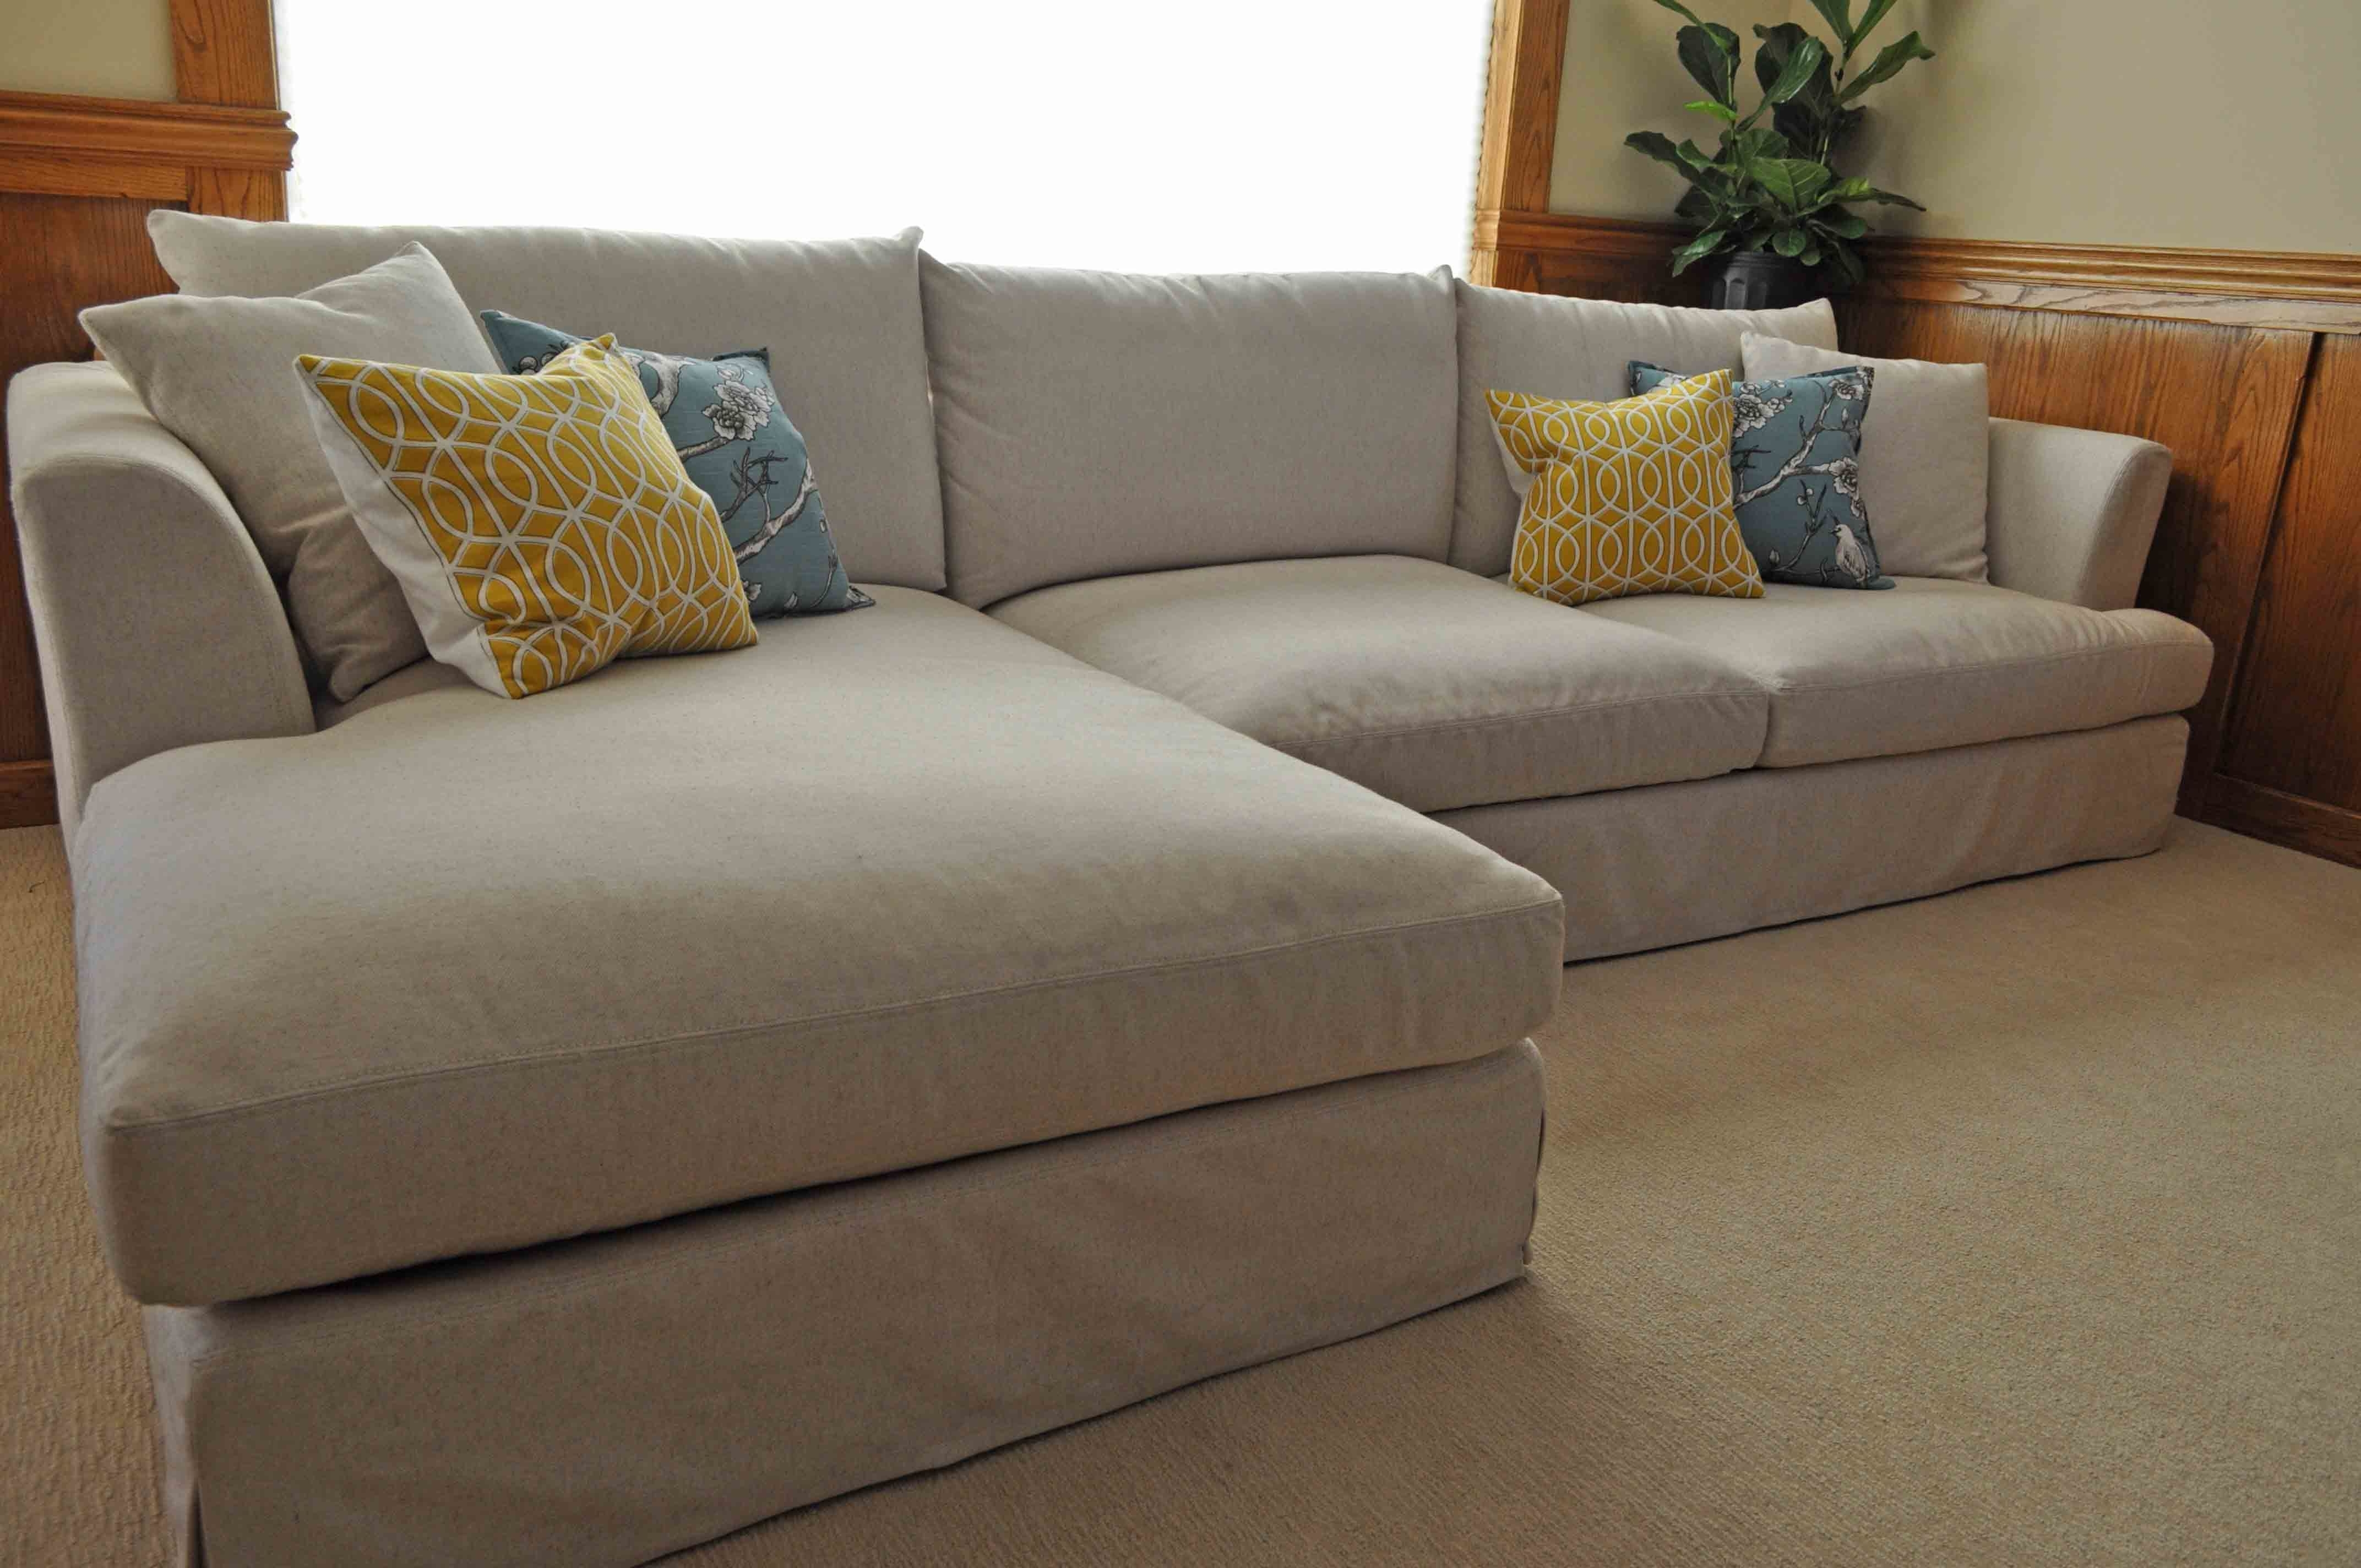 Well Known Sofa : Comfortable Sectional Sofas Most Comfortable Sofa Ashley Inside Comfortable Sectional Sofas (View 20 of 20)